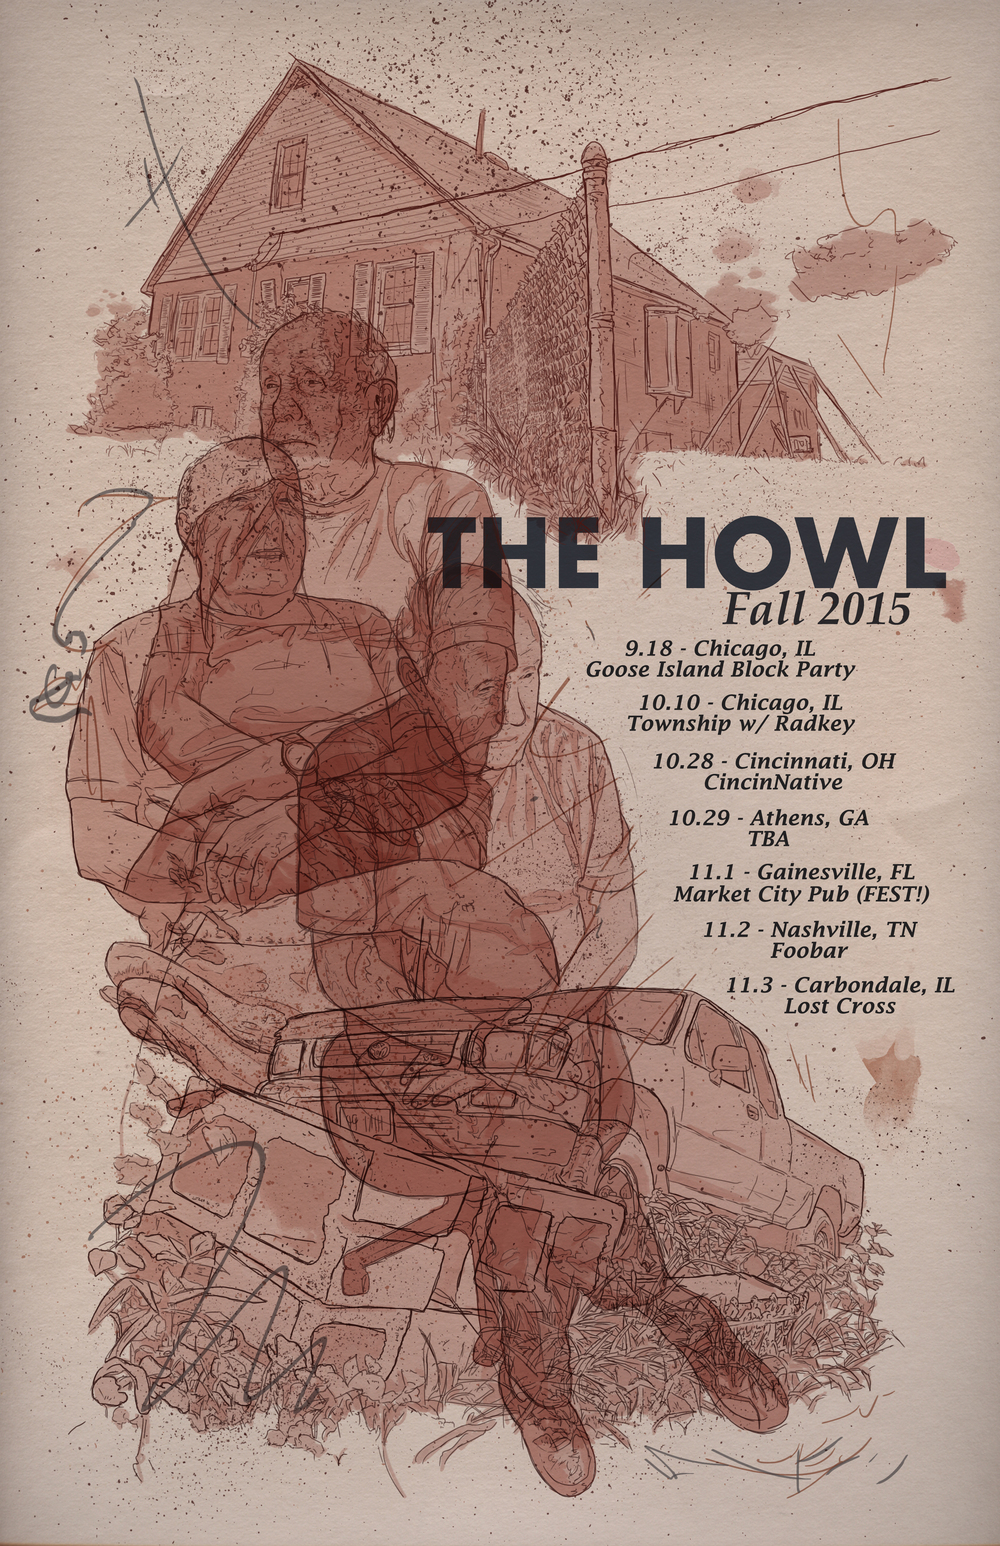 The Howl Fall 2015 Tour